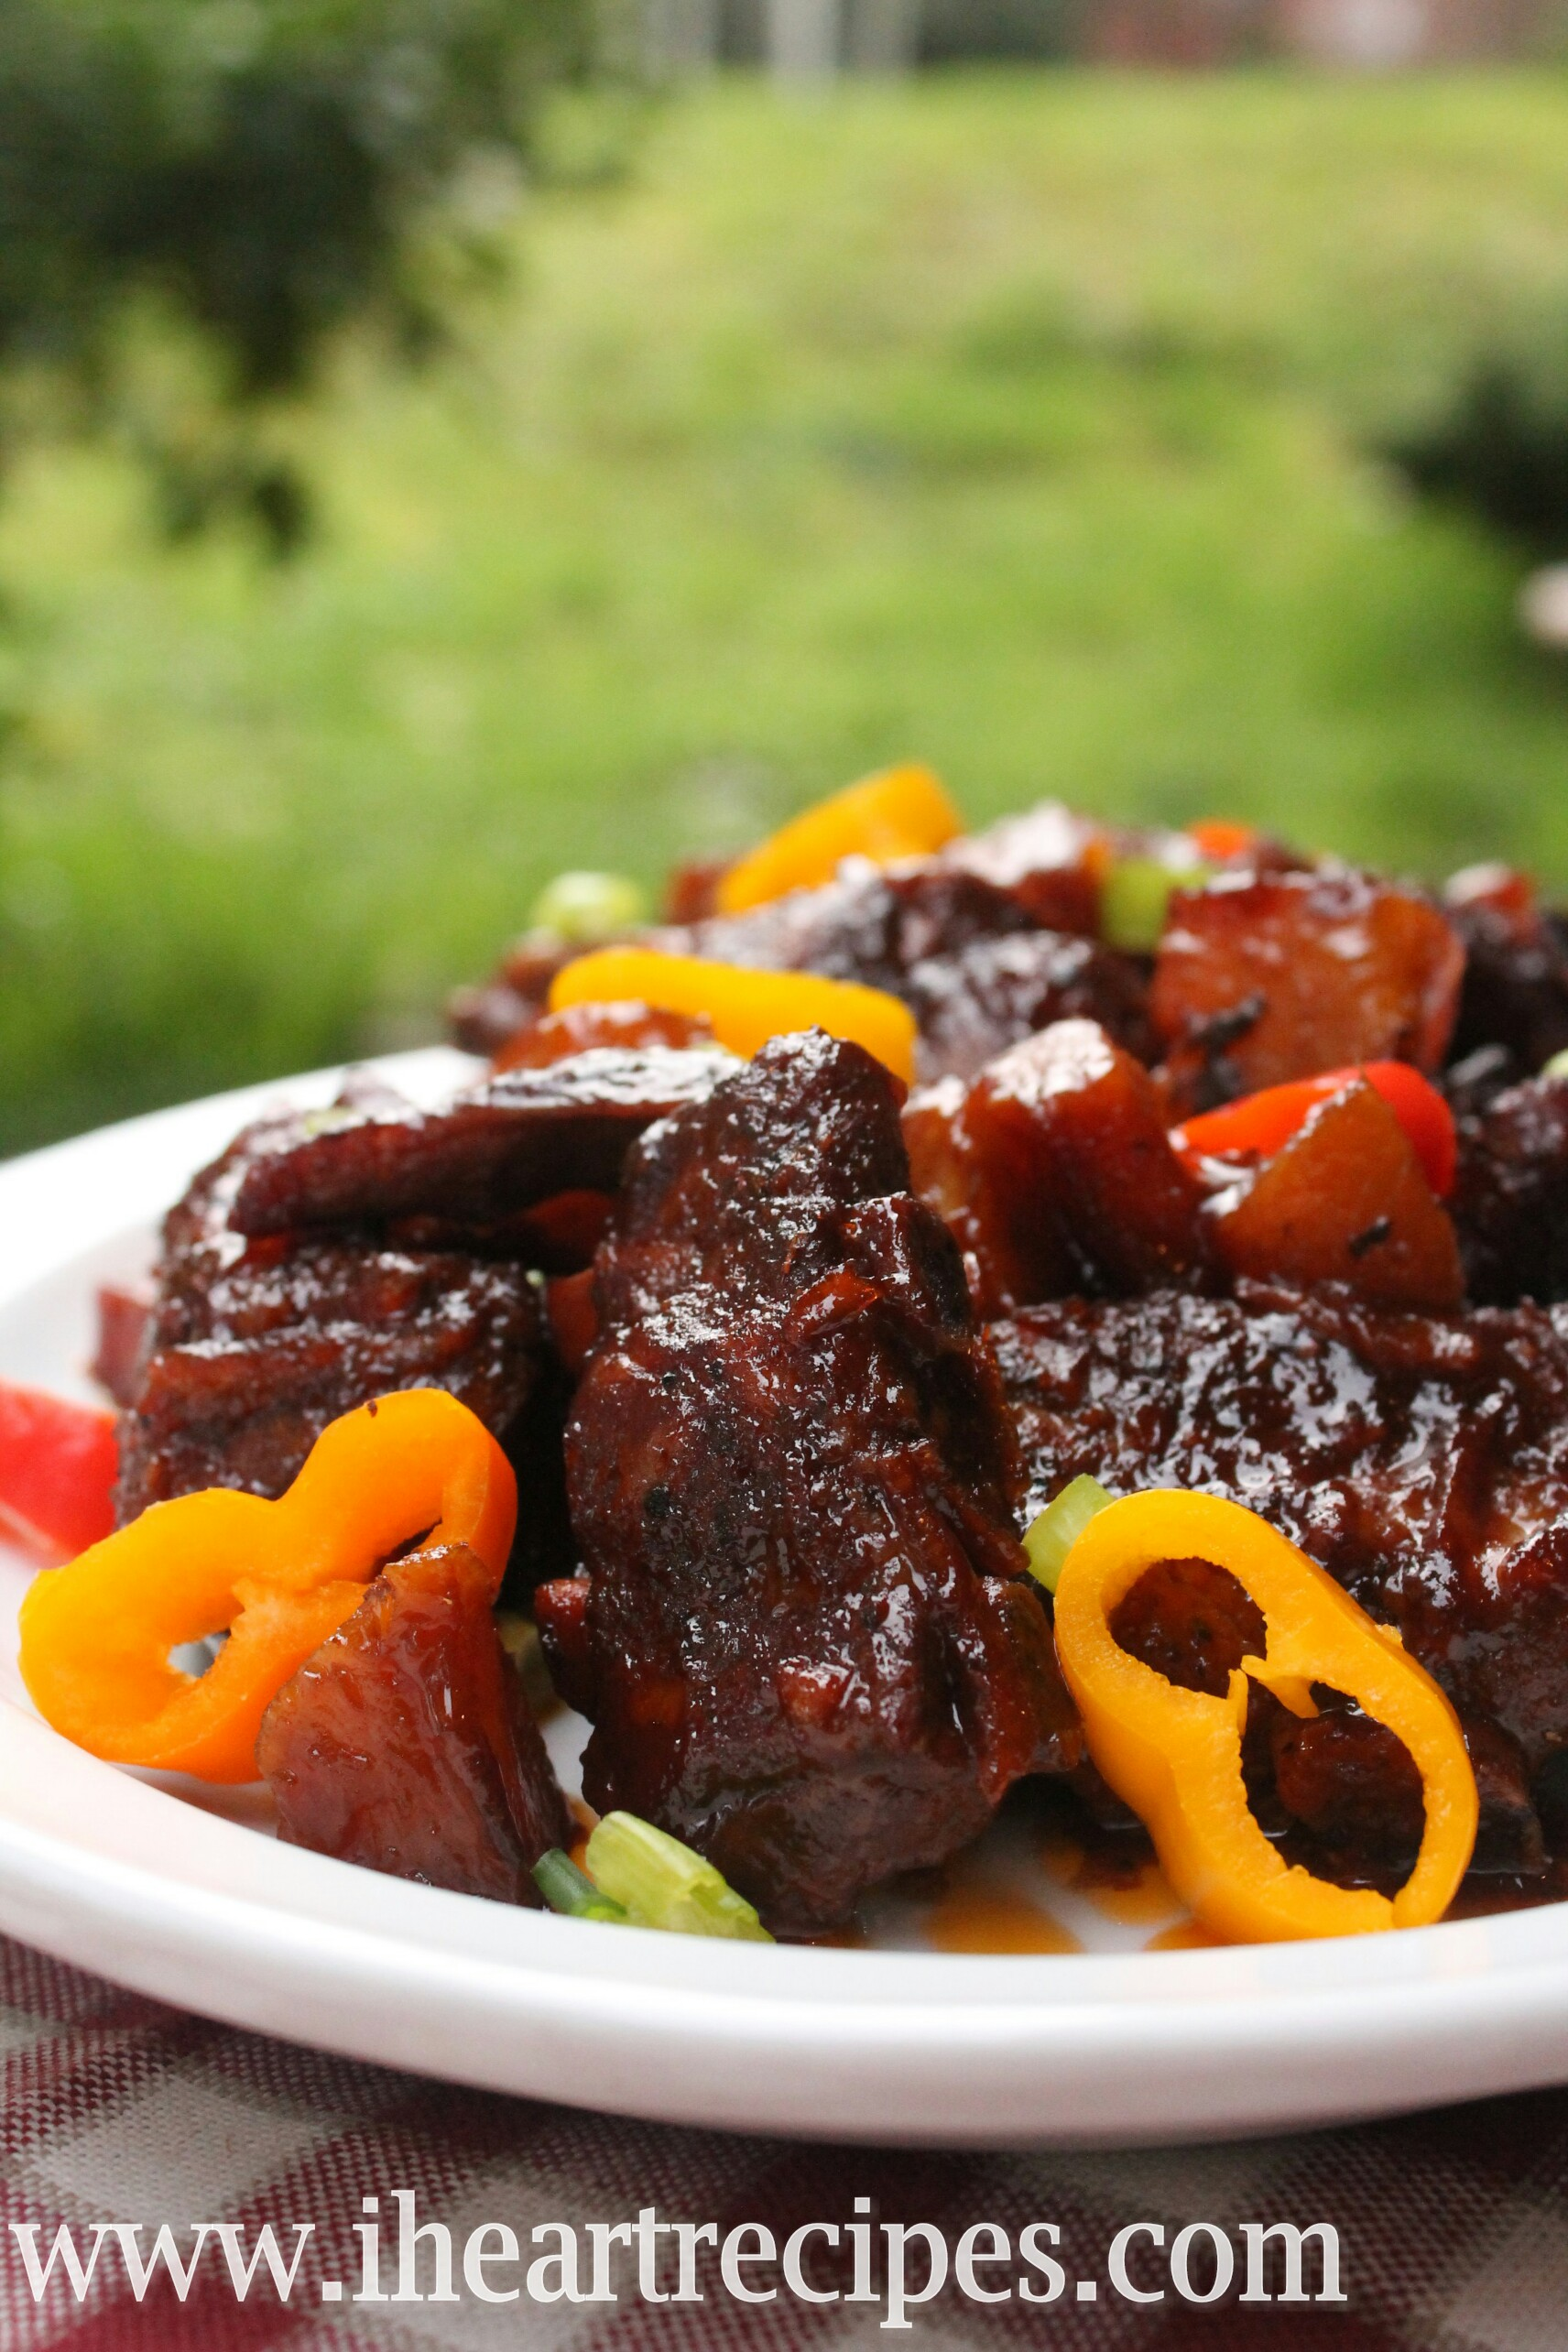 Tender pork short ribs and a sweet and tangy BBQ sauce make this slow cooked dish a perfect summertime meal